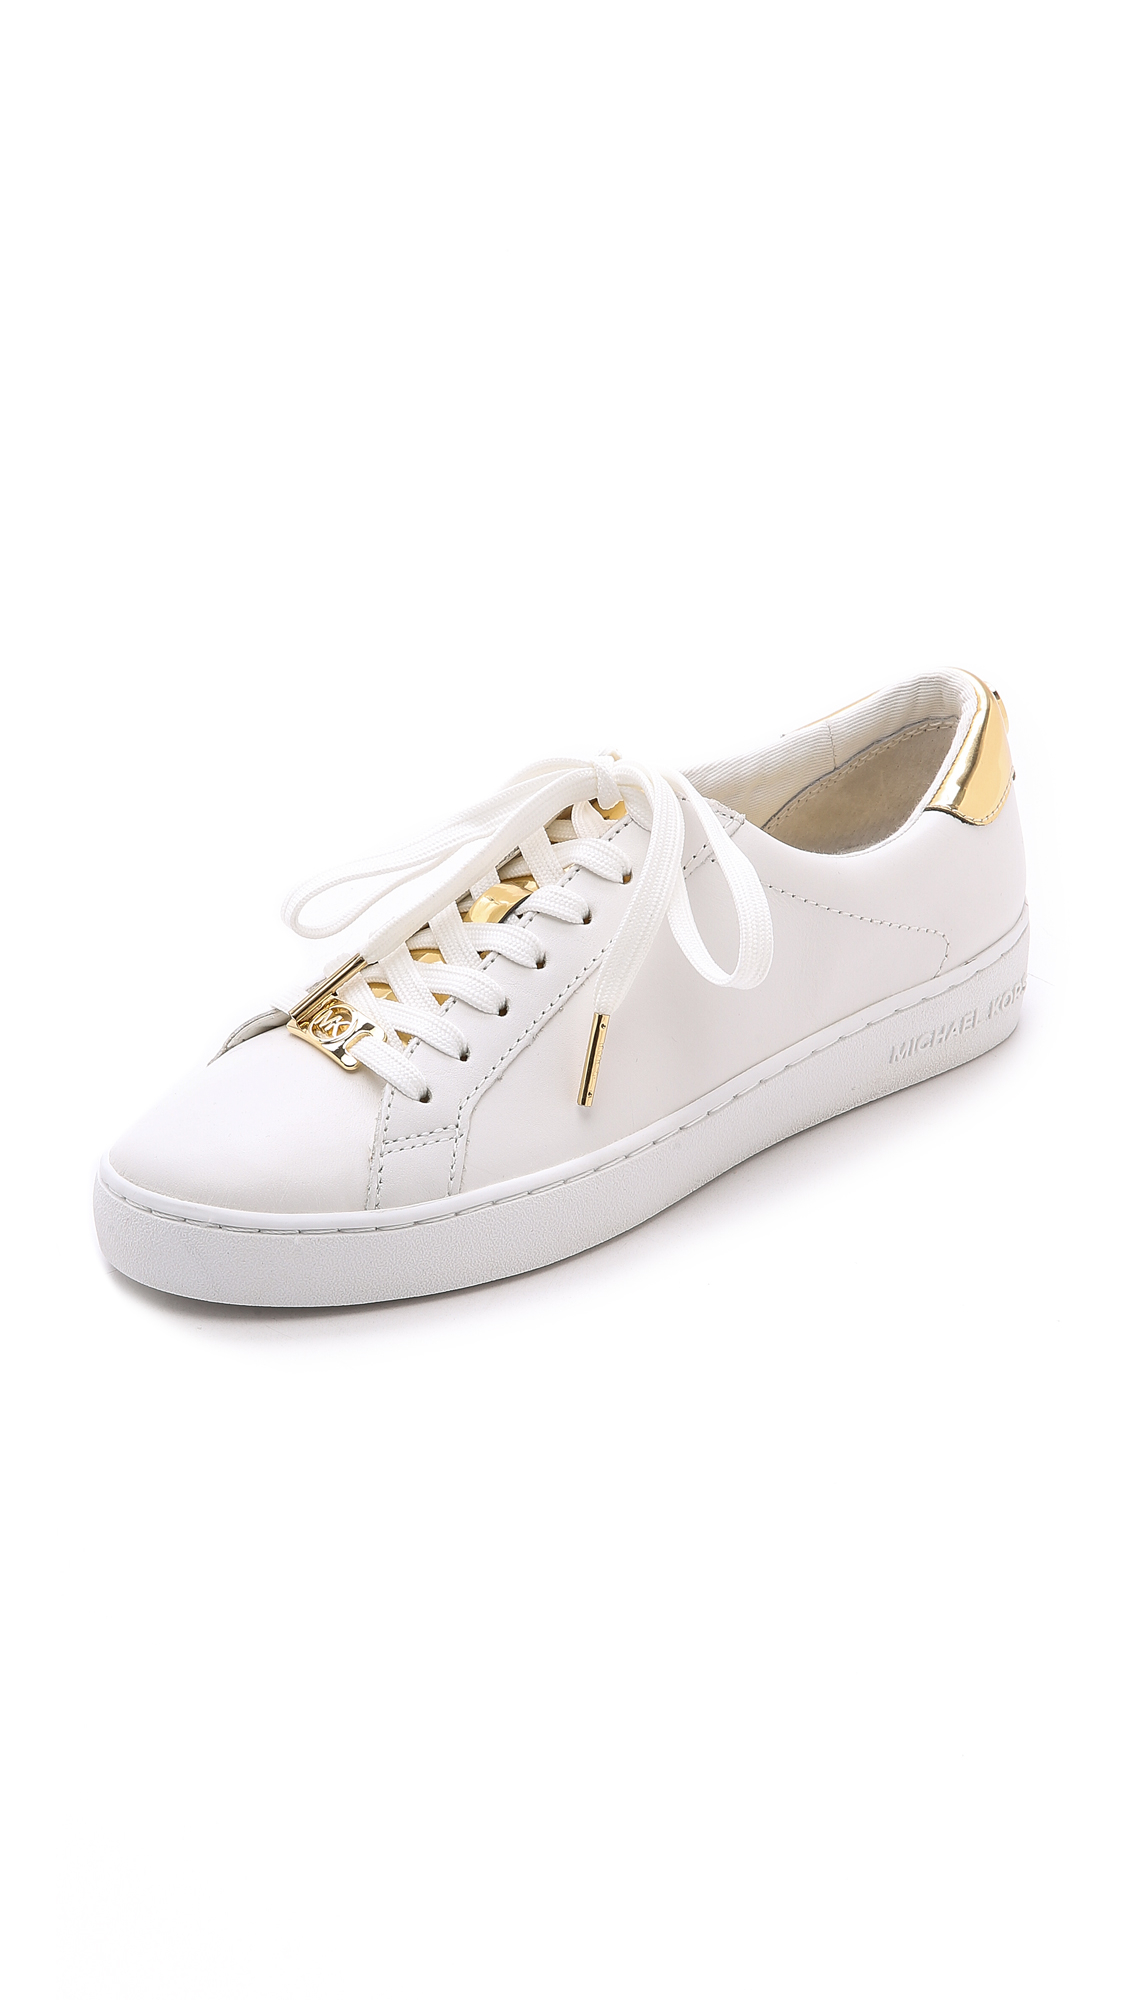 048253baed773 Lyst - MICHAEL Michael Kors Irving Lace Up Sneakers - Optic Pale ...